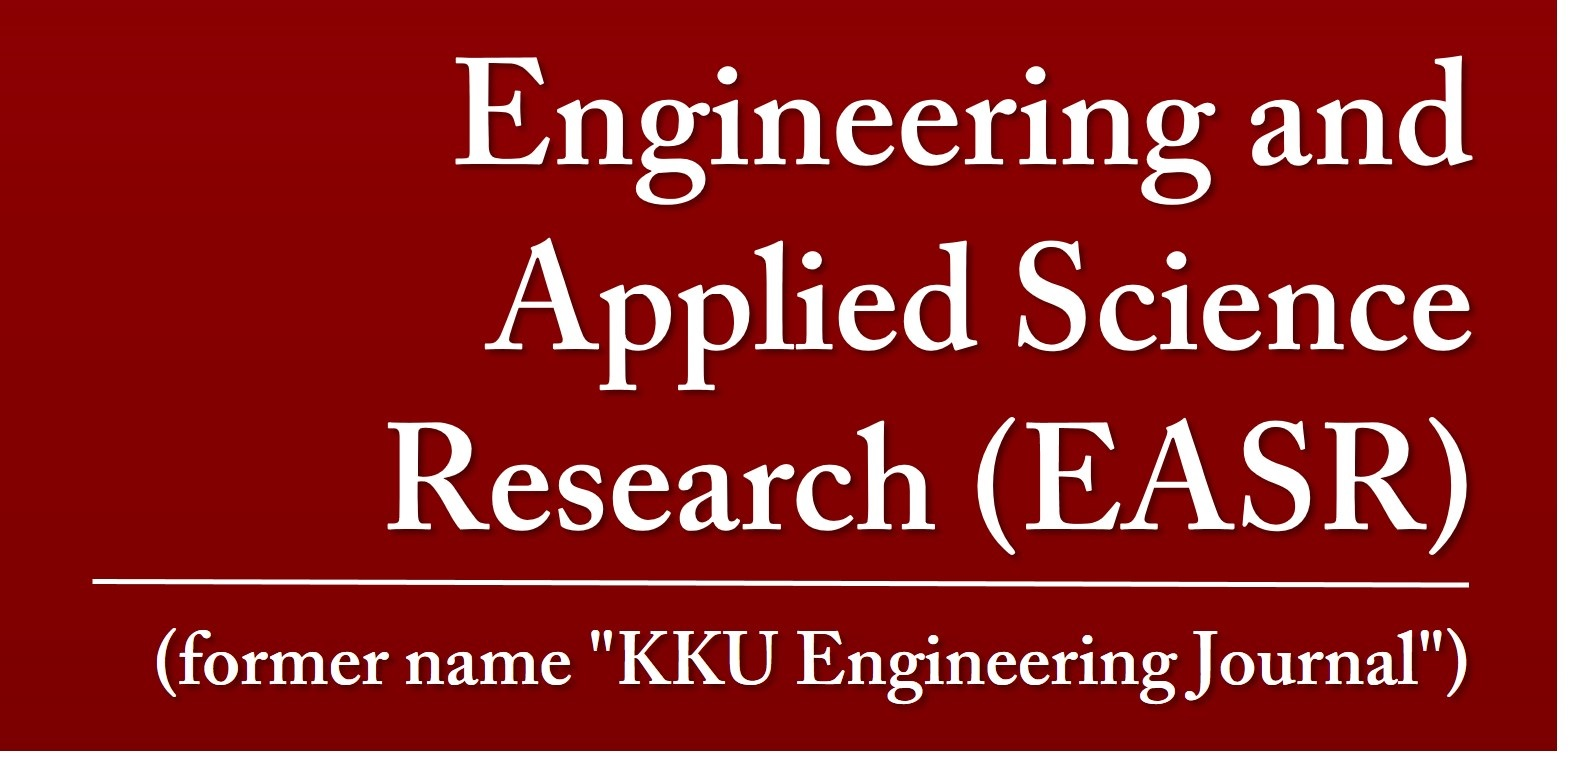 Engineering and Applied Science Research (EASR)